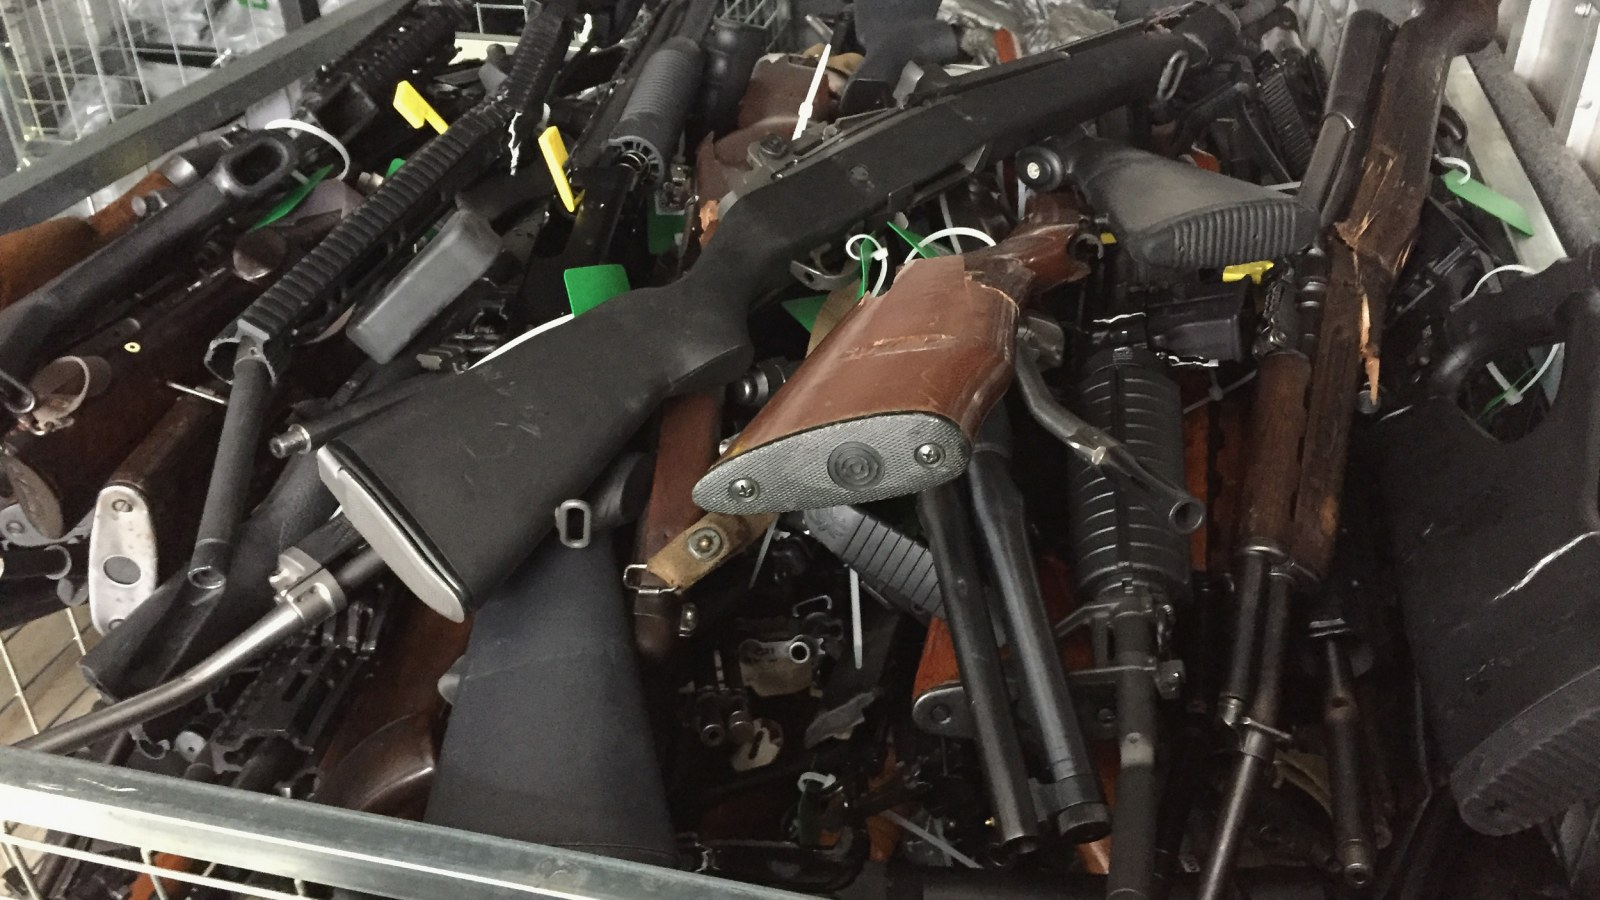 New Zealanders Have Returned More Than 10,000 Firearms Since